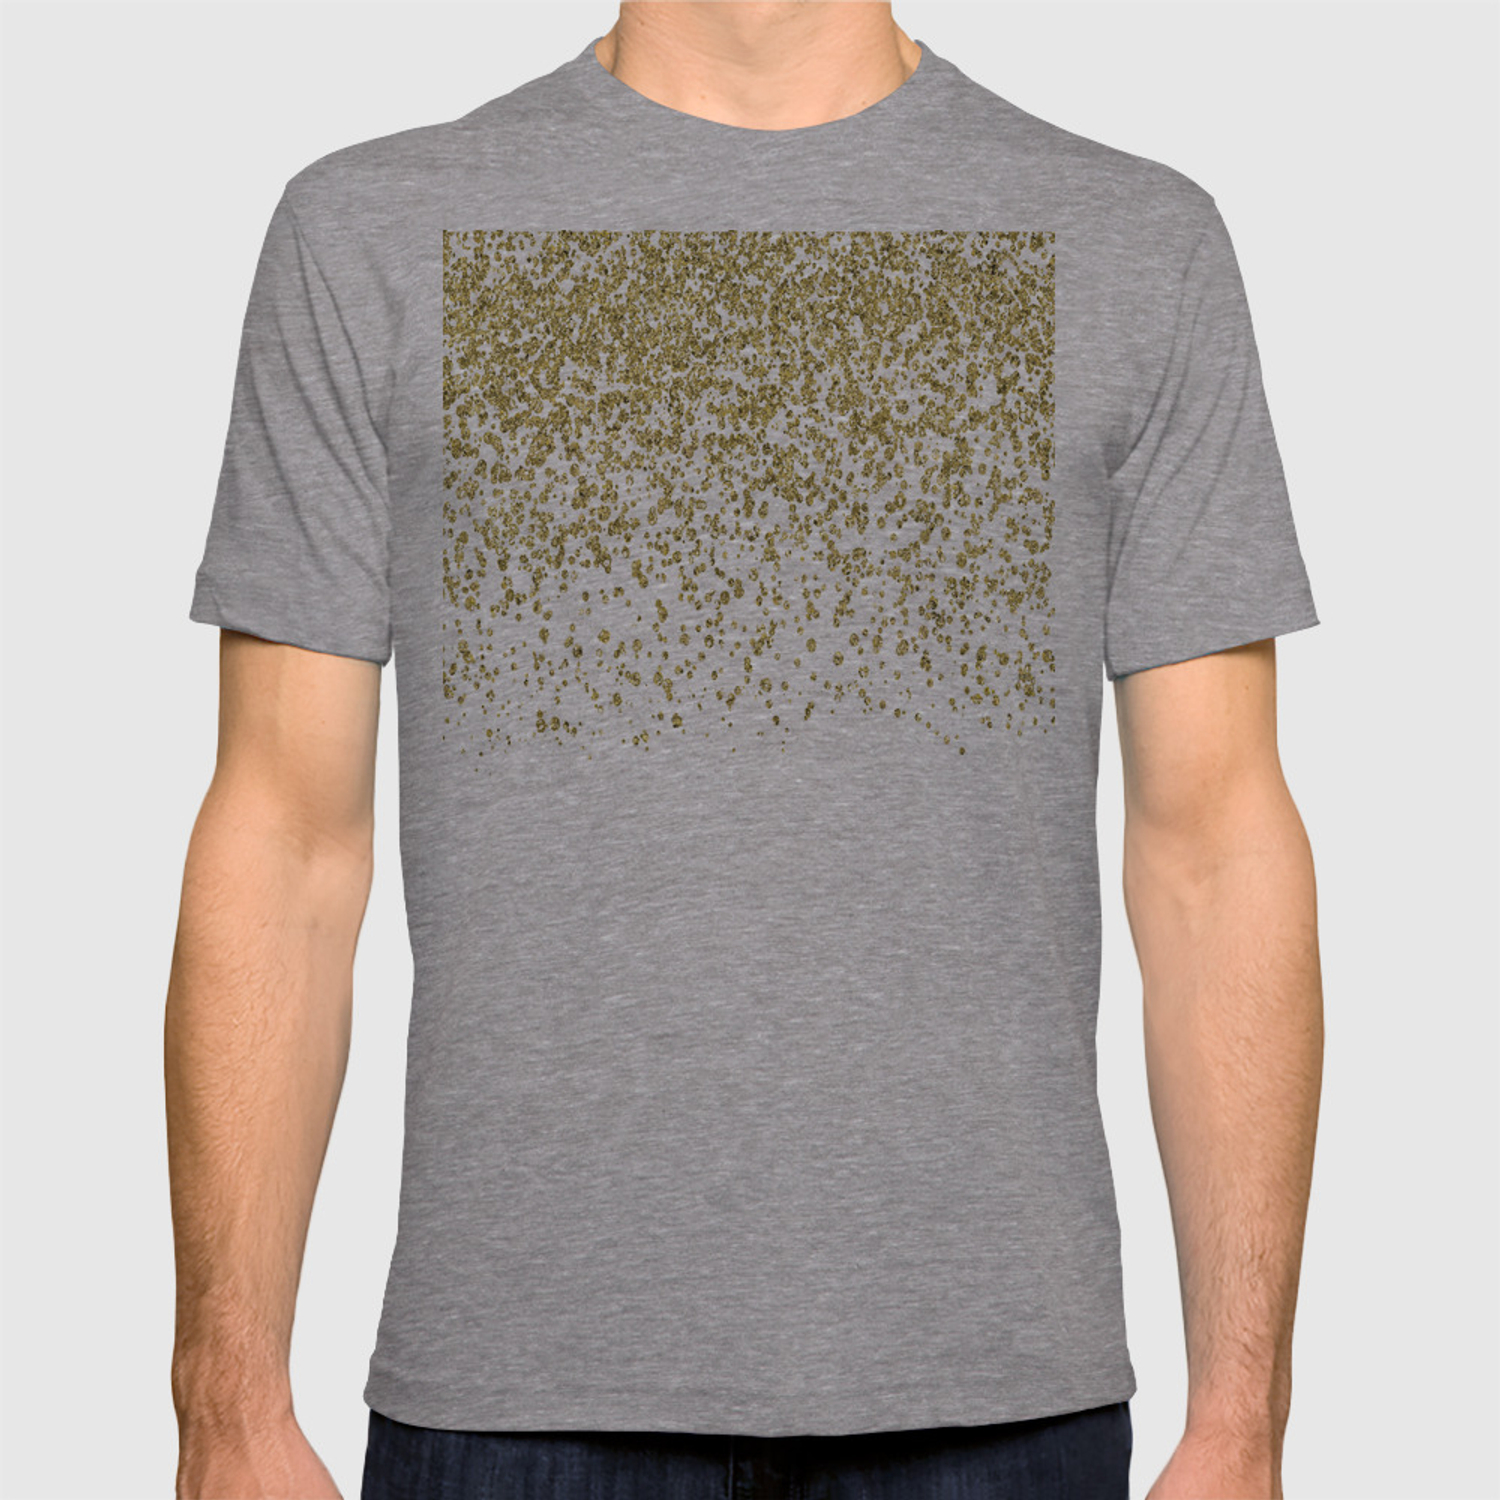 8cdcf0aab5f Sparkling gold glitter confetti on simple white background - Pattern T-shirt  by betterhome